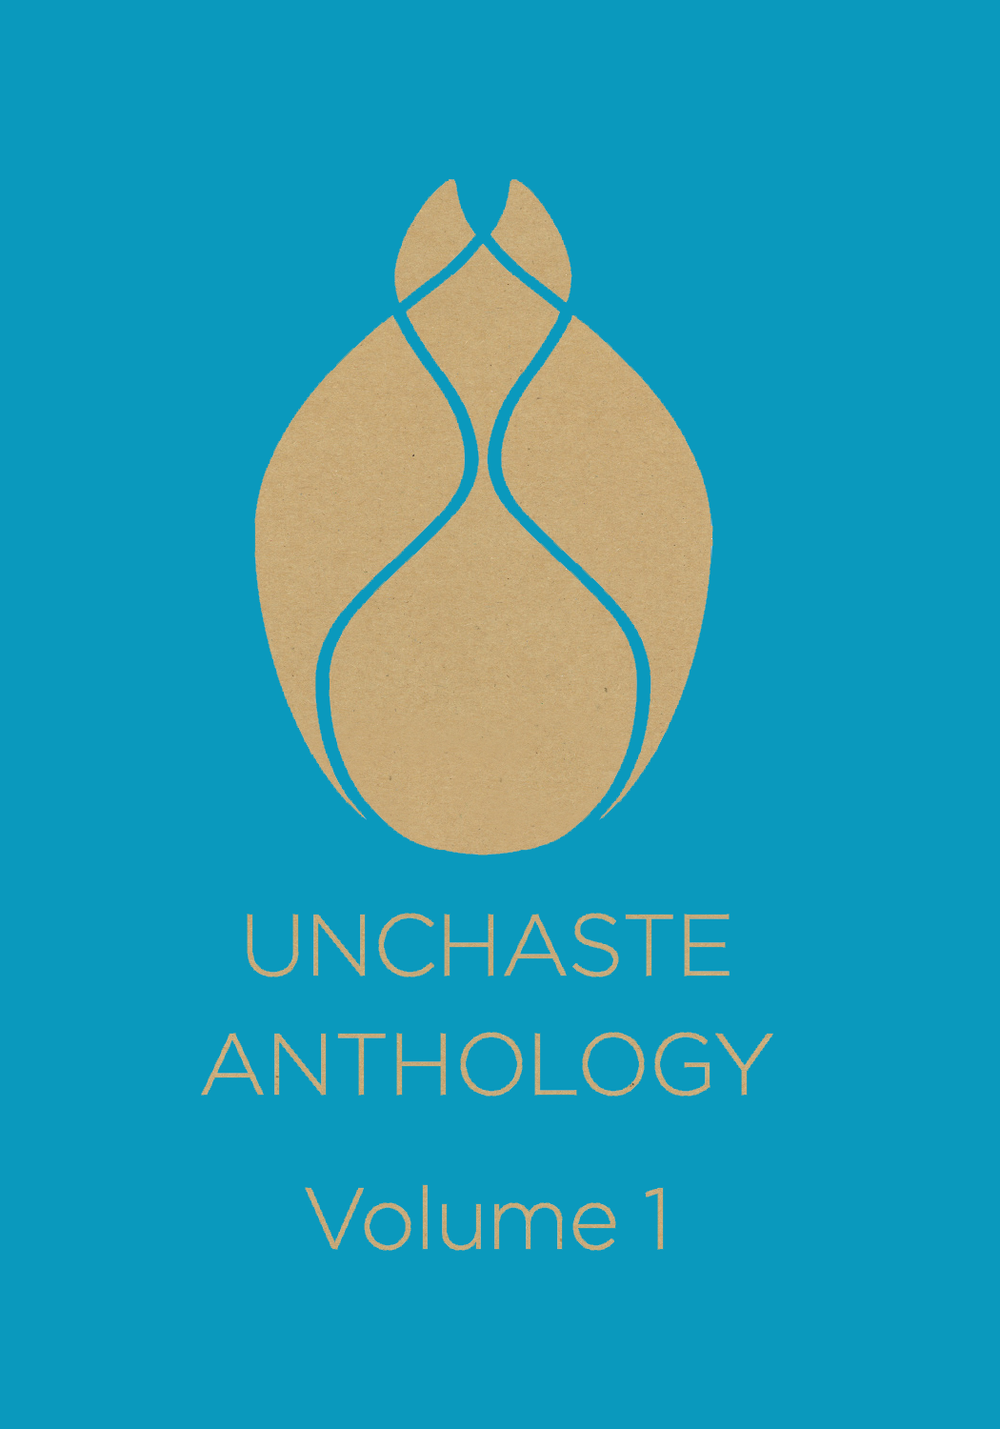 Unchaste Anthology Volume 1